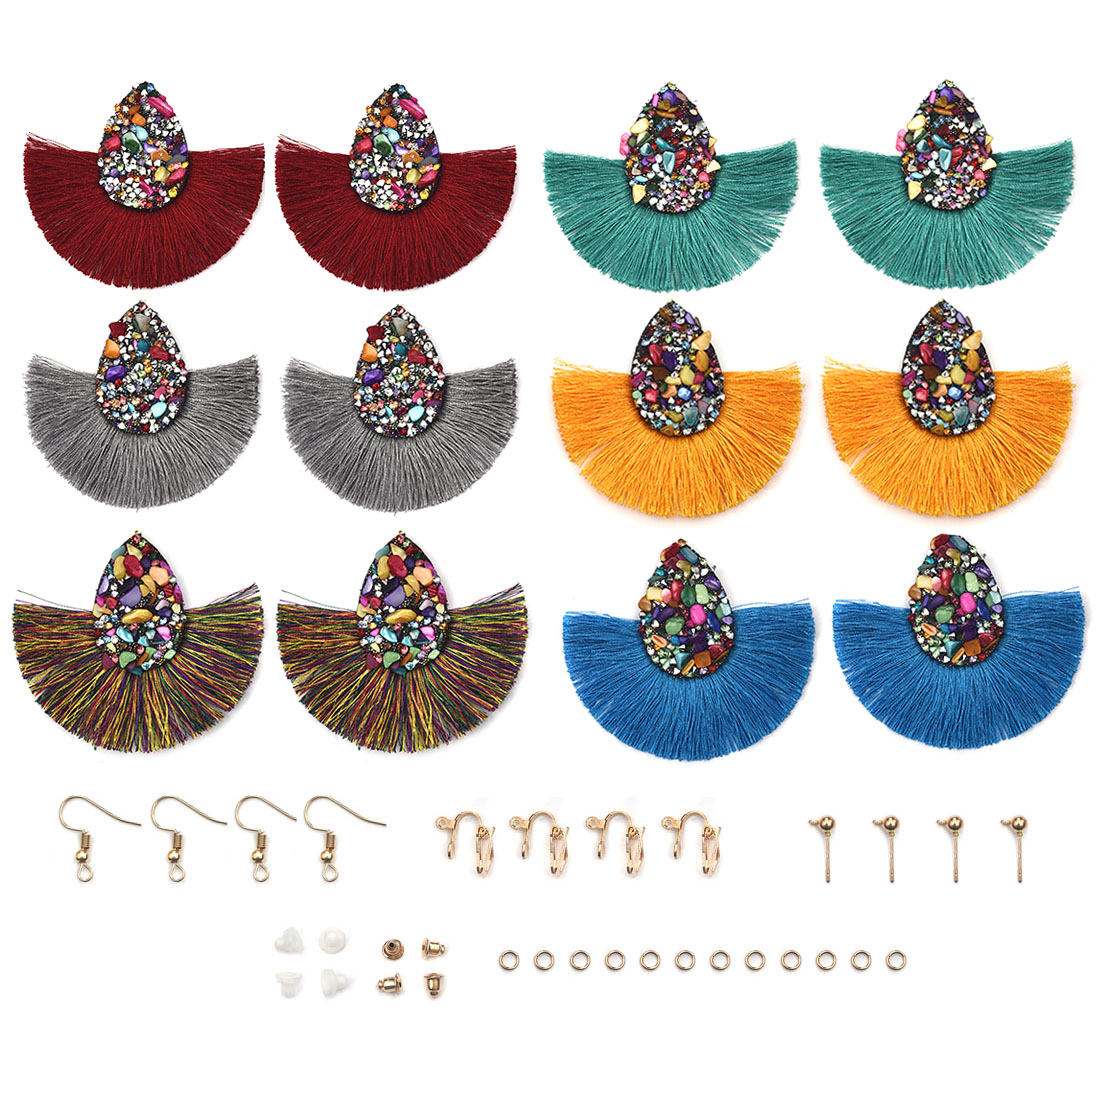 12pcs/Pack Bohemian Big Tassel Dangle Drop Earrings With Hooks For Jewelry Making Women Fringe Earrings Findings DIY Earring